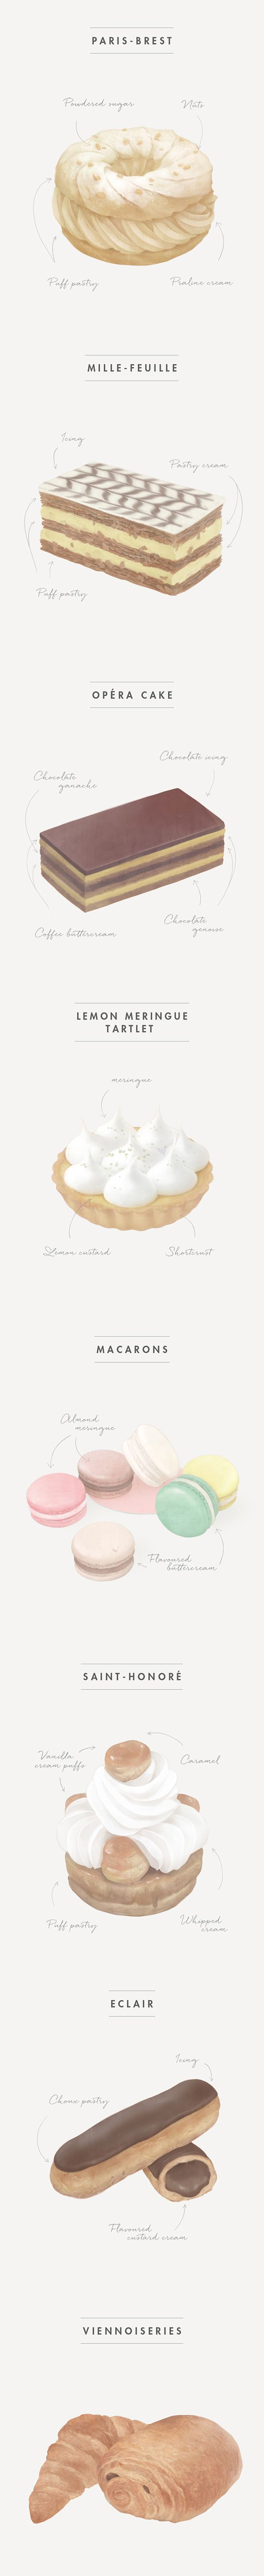 Illustration and Design for a guide book of Paris finest pastry shops,published in Paris.